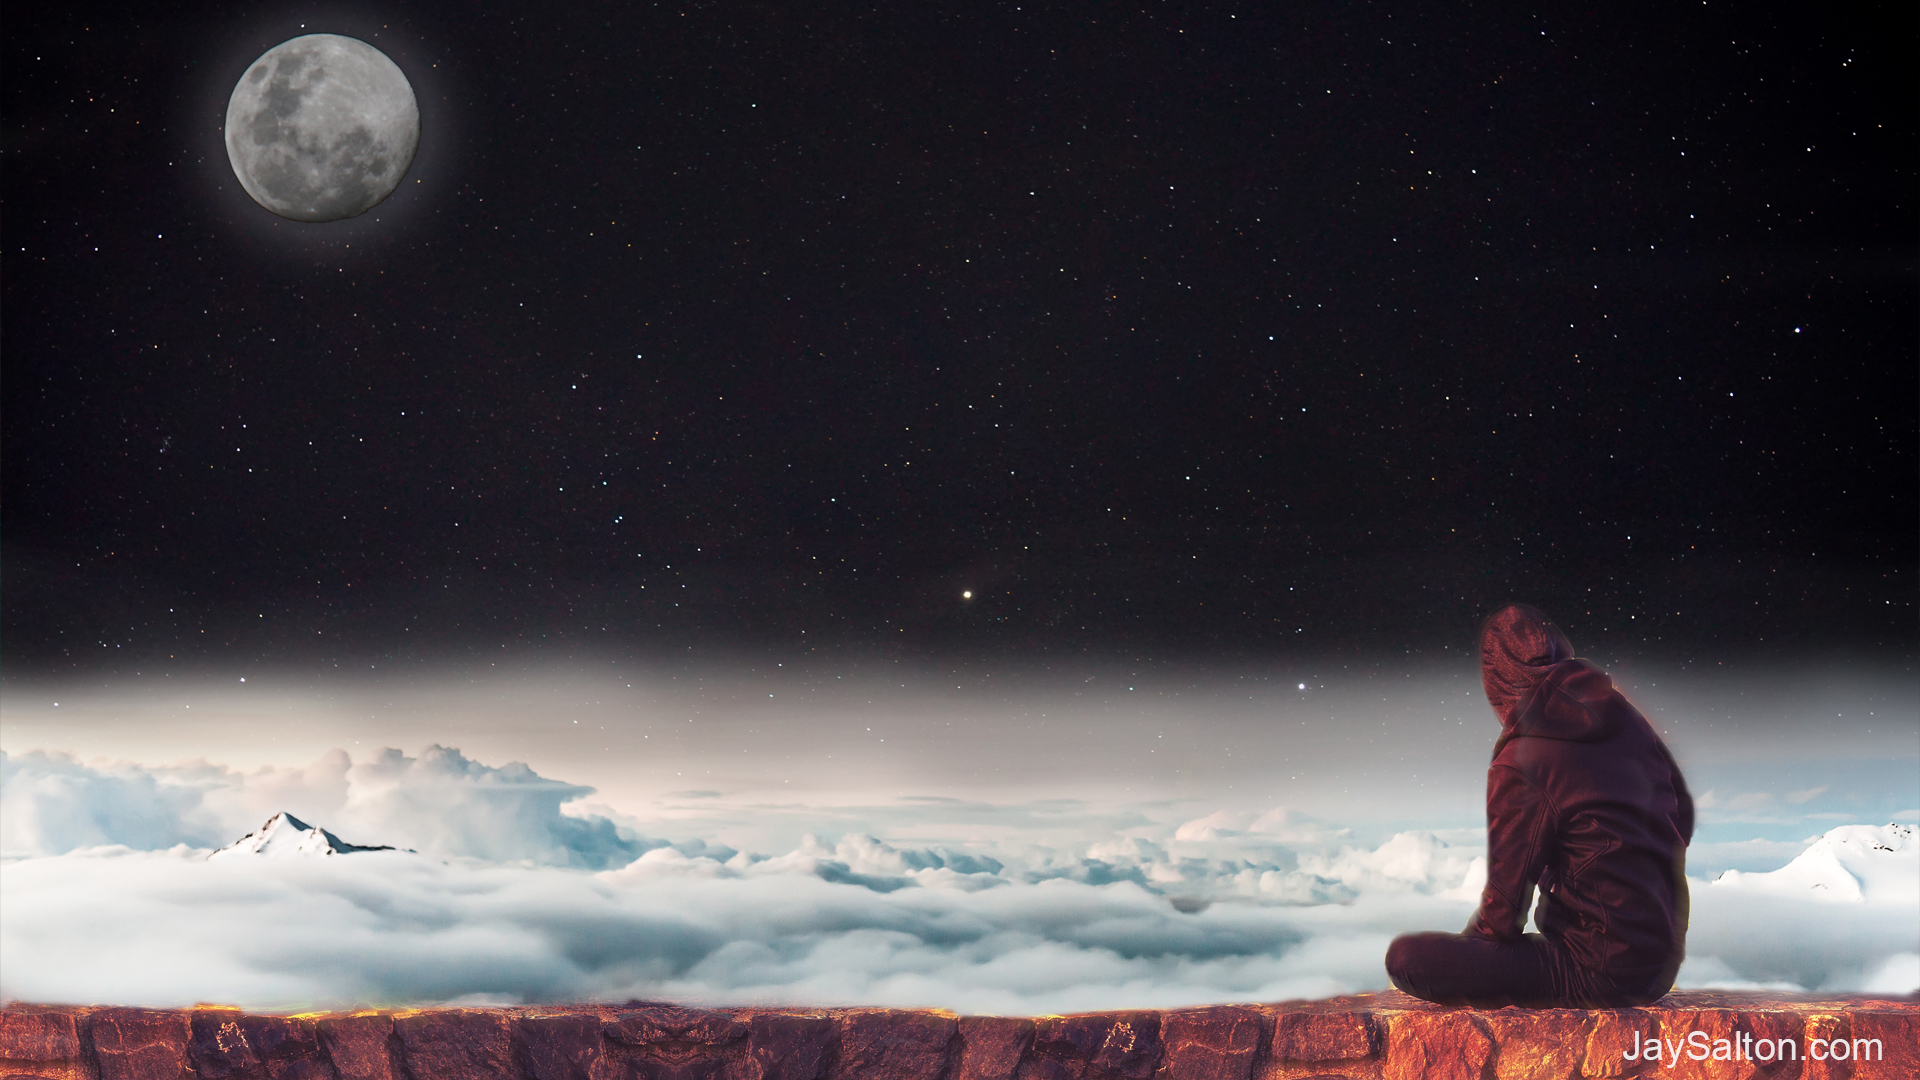 General 1920x1080 stars starscape space Moon moon phases clouds science fiction digital art sky night climbing rock climbing heights clear sky